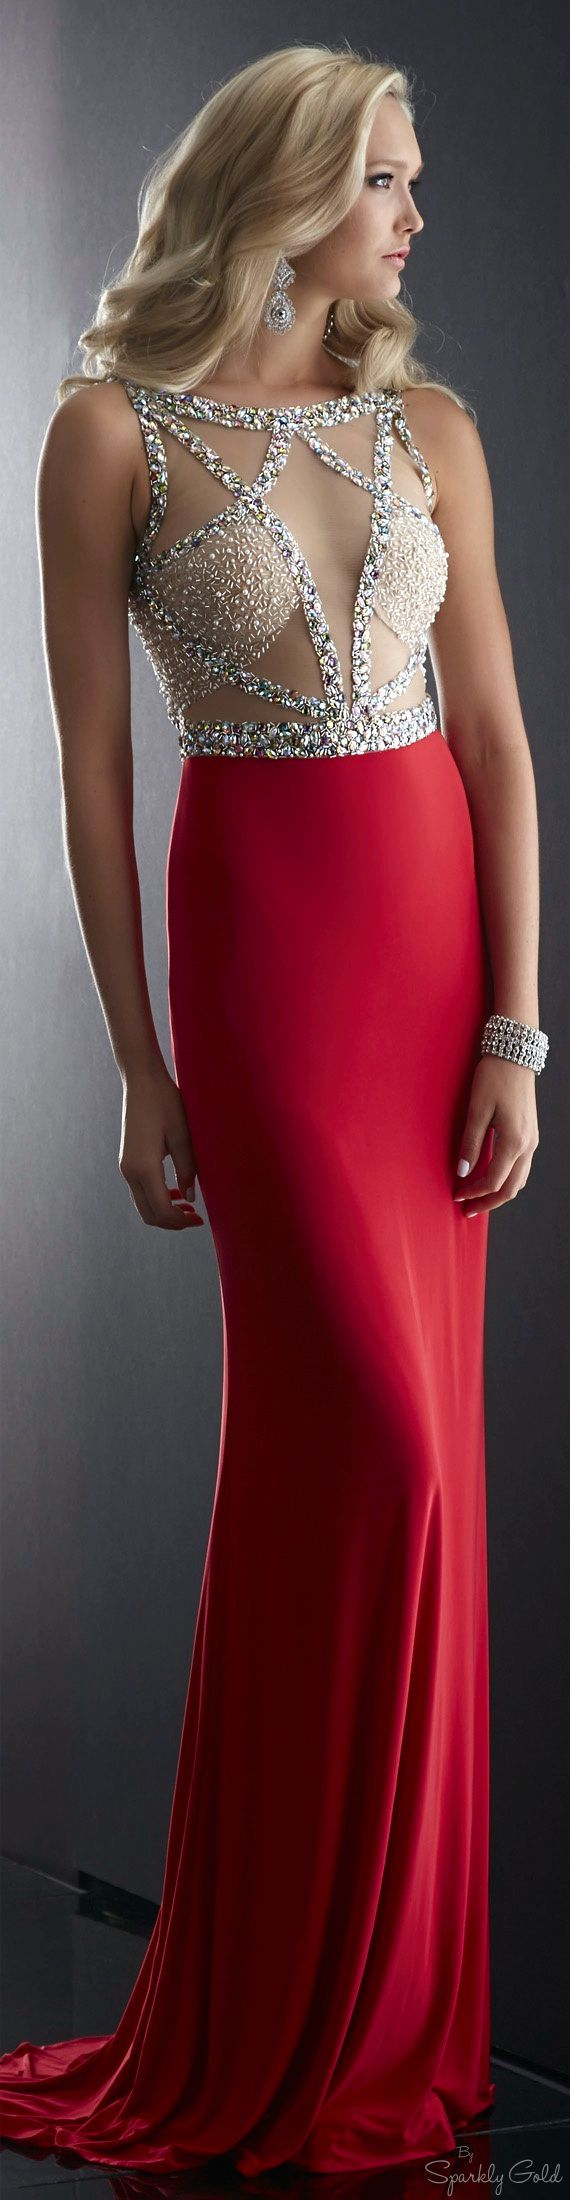 Maxi prom dress silver top red bottom. women fashion outfit clothing style apparel @roressclothes closet ideas